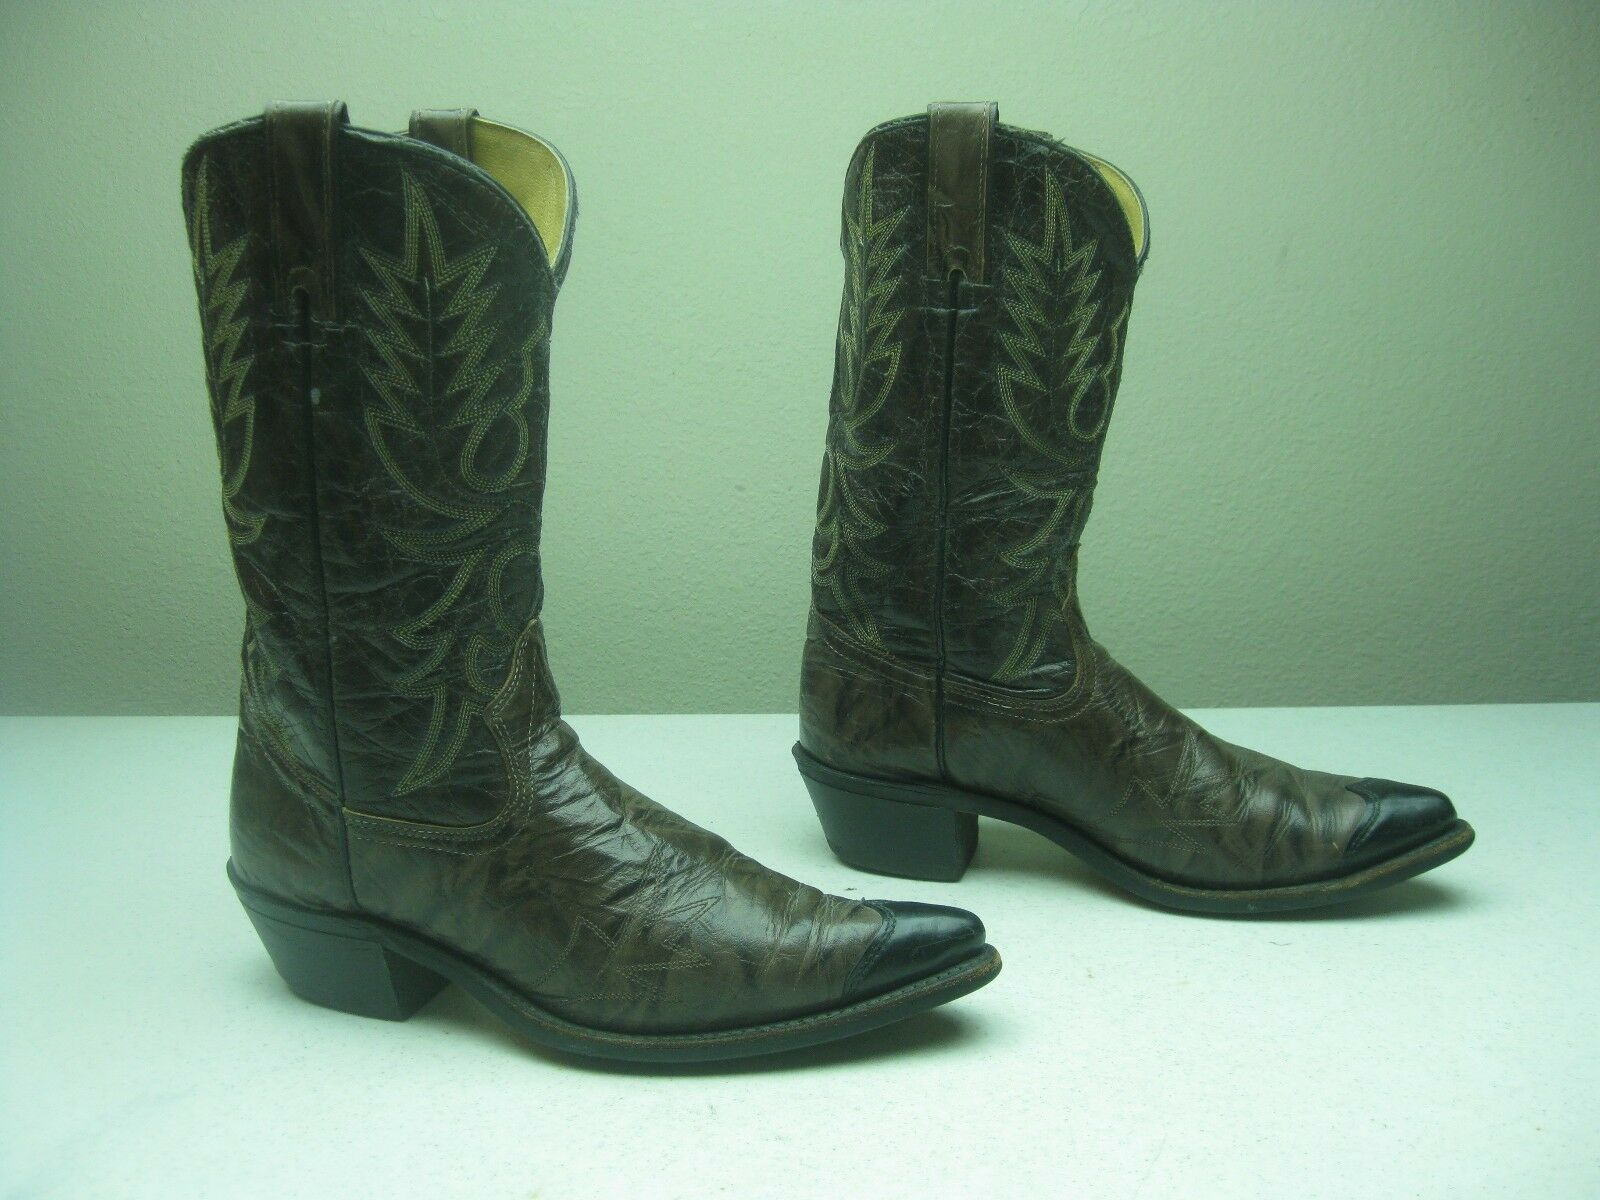 BROWN ROCKABILLY DISTRESSED WRANGLER  A ROCKABILLY BROWN WESTERN COWBOY DANCING BOOTS SIZE 10 D 4f7189